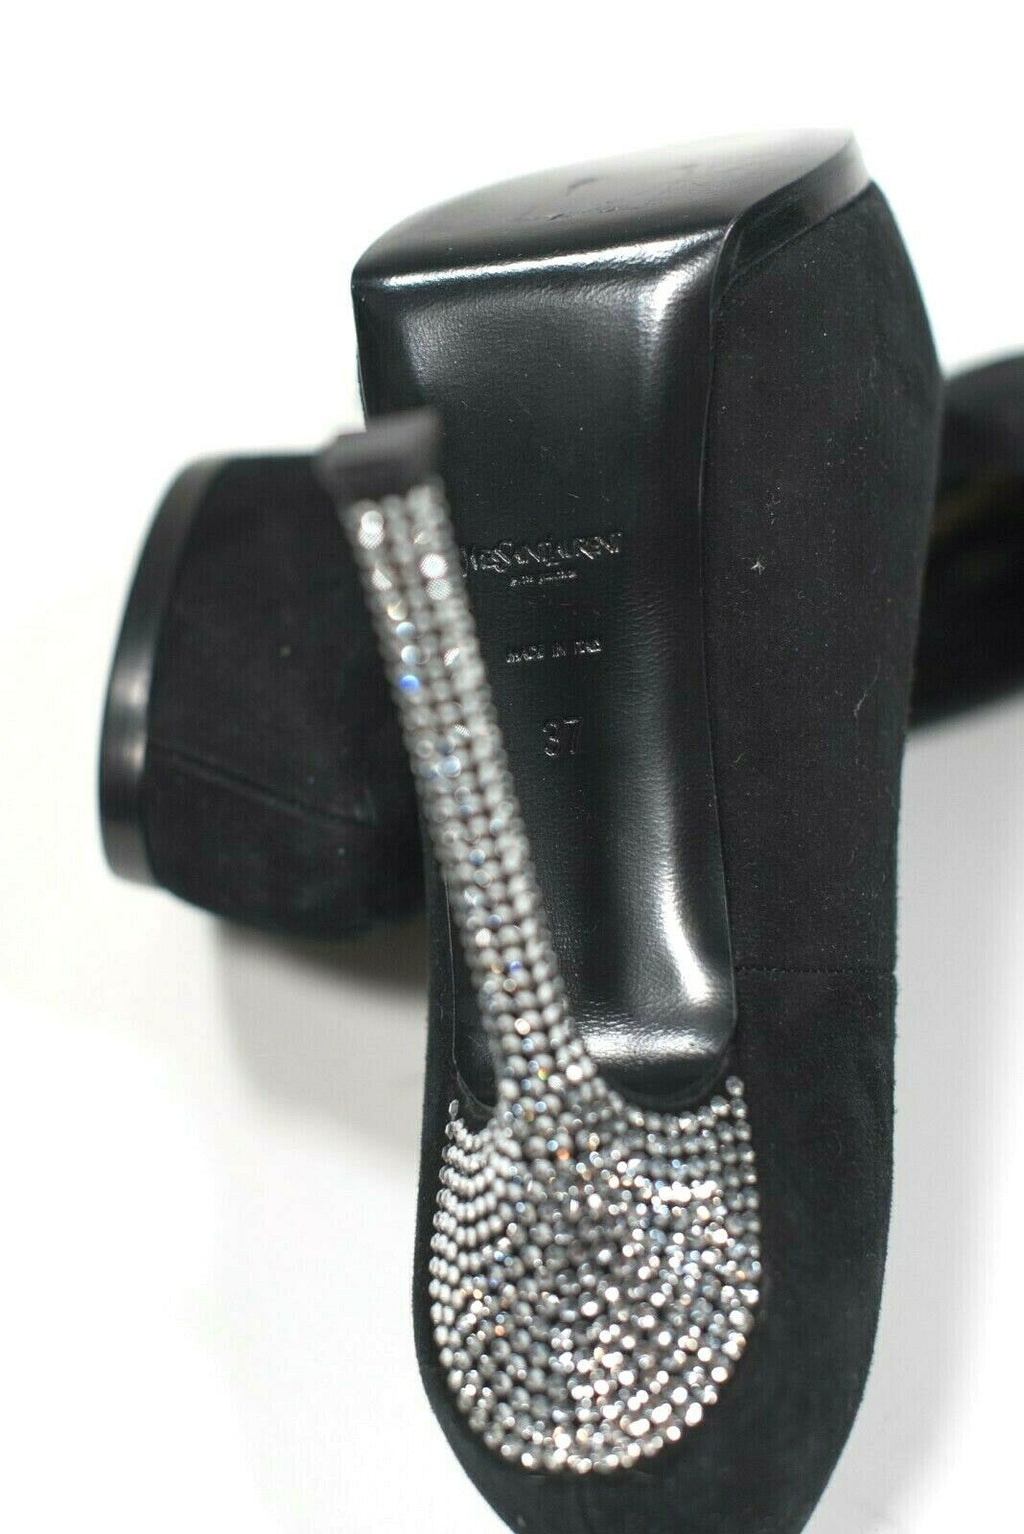 YSL Tribute Two Crystal Pumps Size 37